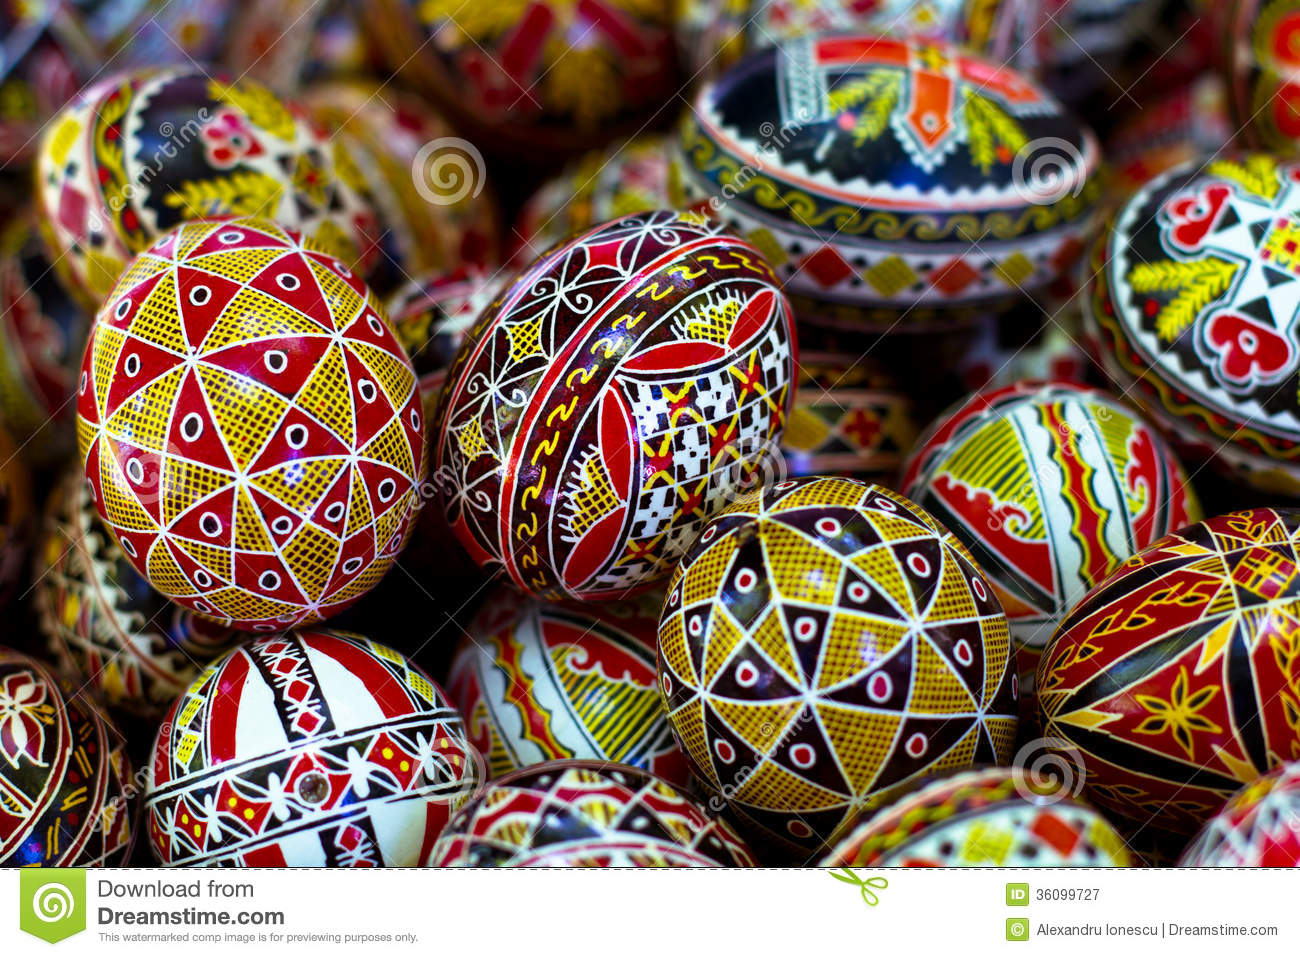 Romanian easter greeting merry christmas and happy new year 2018 romanian easter greeting m4hsunfo Images